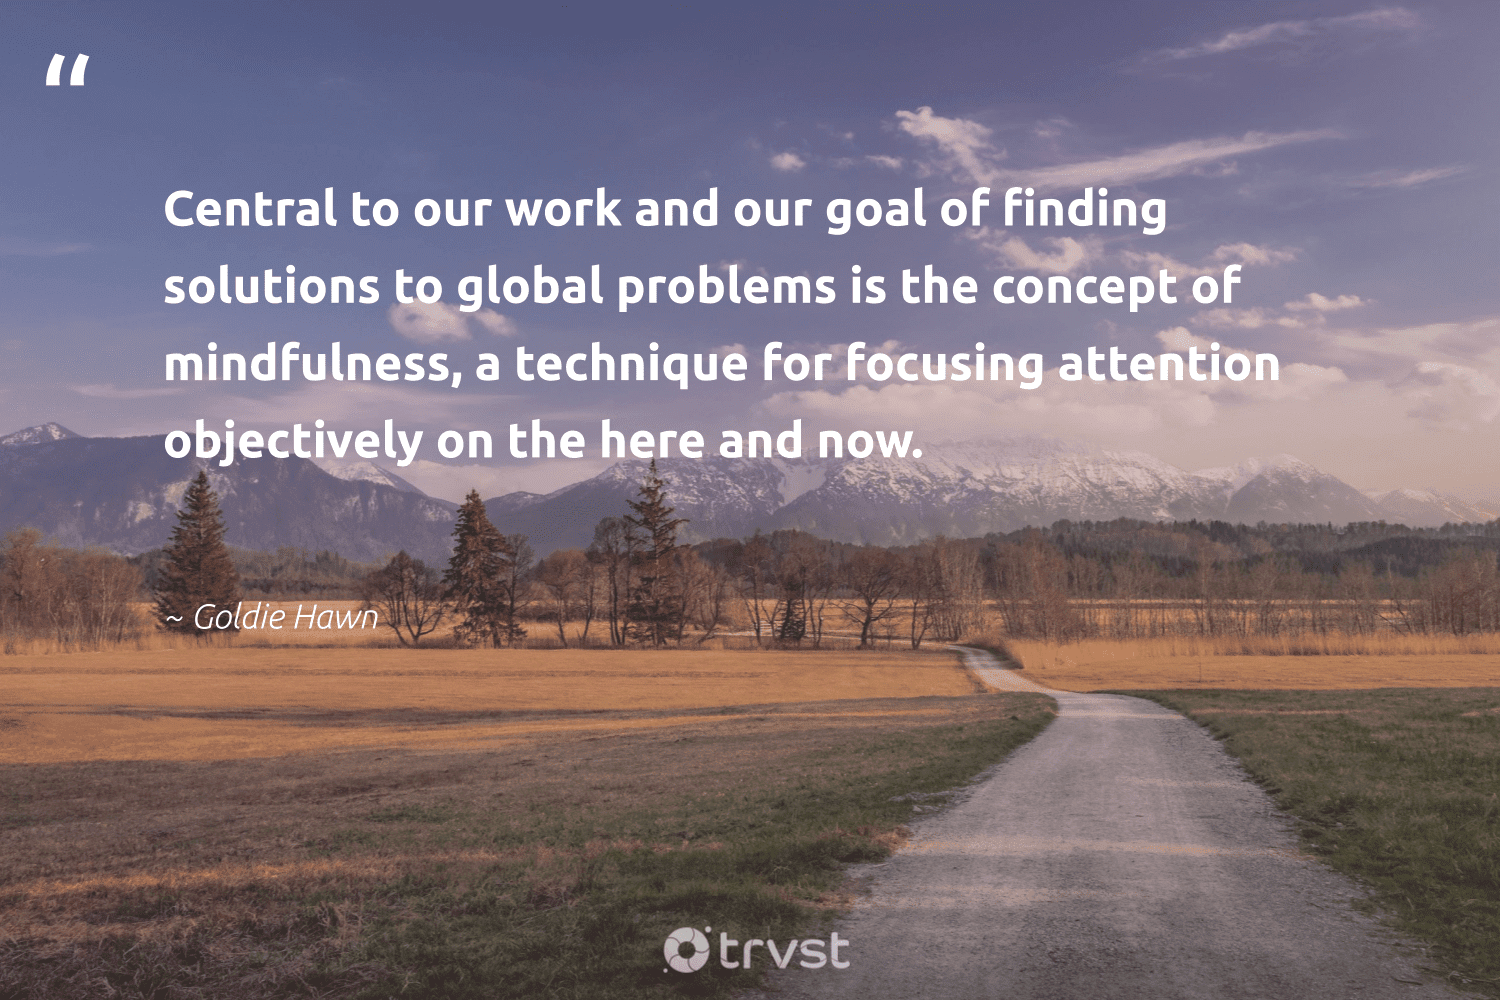 """""""Central to our work and our goal of finding solutions to global problems is the concept of mindfulness, a technique for focusing attention objectively on the here and now.""""  - Goldie Hawn #trvst #quotes #mindfulness #mindful #mindset #begreat #ecoconscious #goals #meditation #health #dosomething #positivity"""